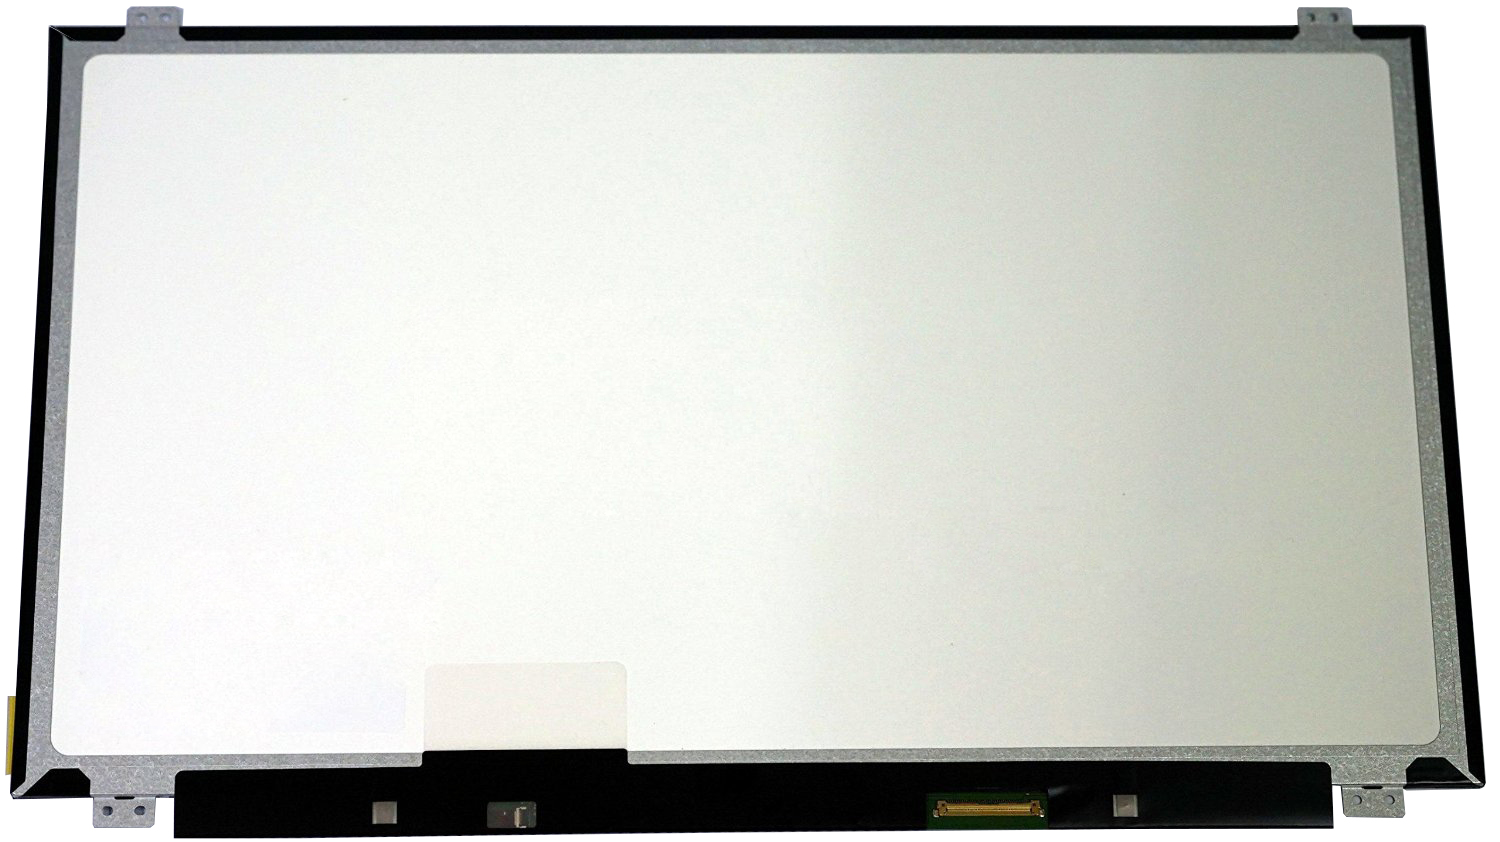 QuYing Laptop LCD Screen for ACER ASPIRE E5-571G E5-521 E5-521G SERIES (15.6 inch 1366x768 30pin N) quying laptop lcd screen for acer extensa 5235 as5551 series 15 6 inch 1366x768 40pin tk